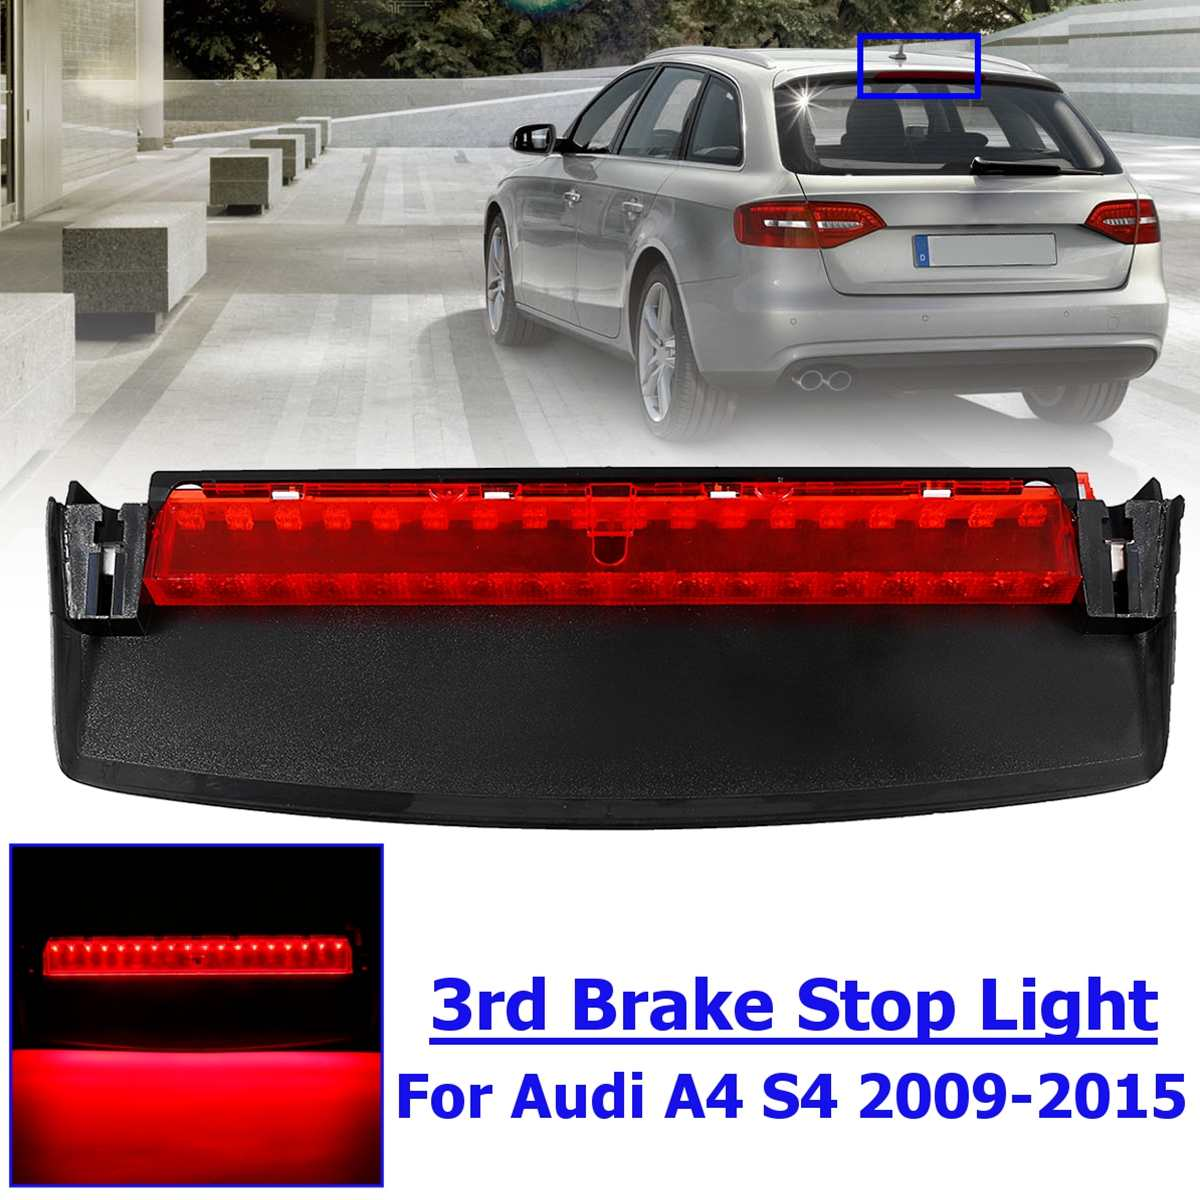 For <font><b>Audi</b></font> <font><b>A4</b></font> Quattro S4 2009 <font><b>2010</b></font> 2011 2012 2013 2014 2015 8K5945097 Rear LED Third High Brake Mount Stop Lamp Light image